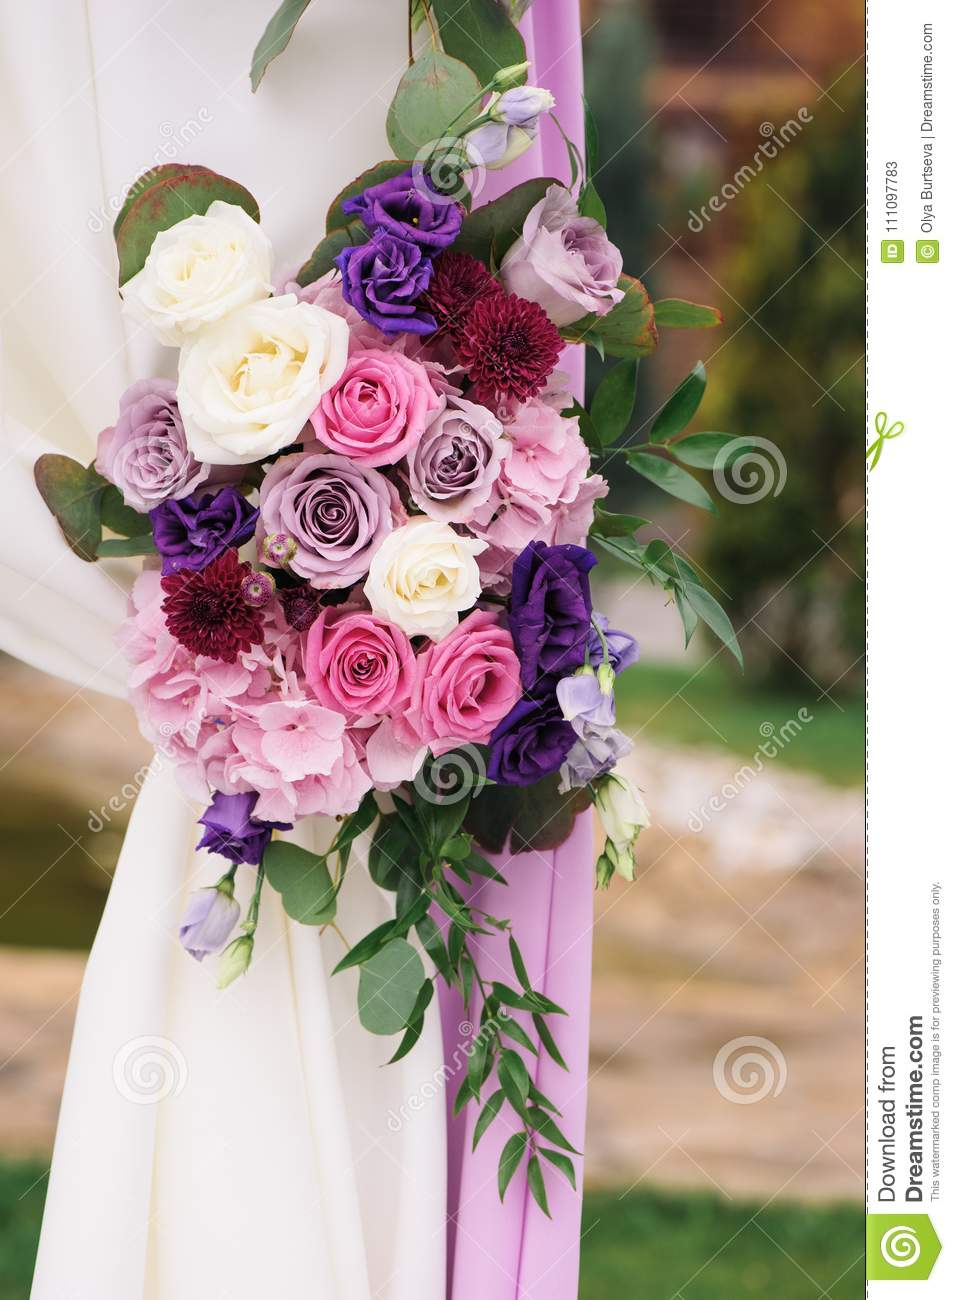 Arch Element With Flowers For Wedding Decorations Stock Image